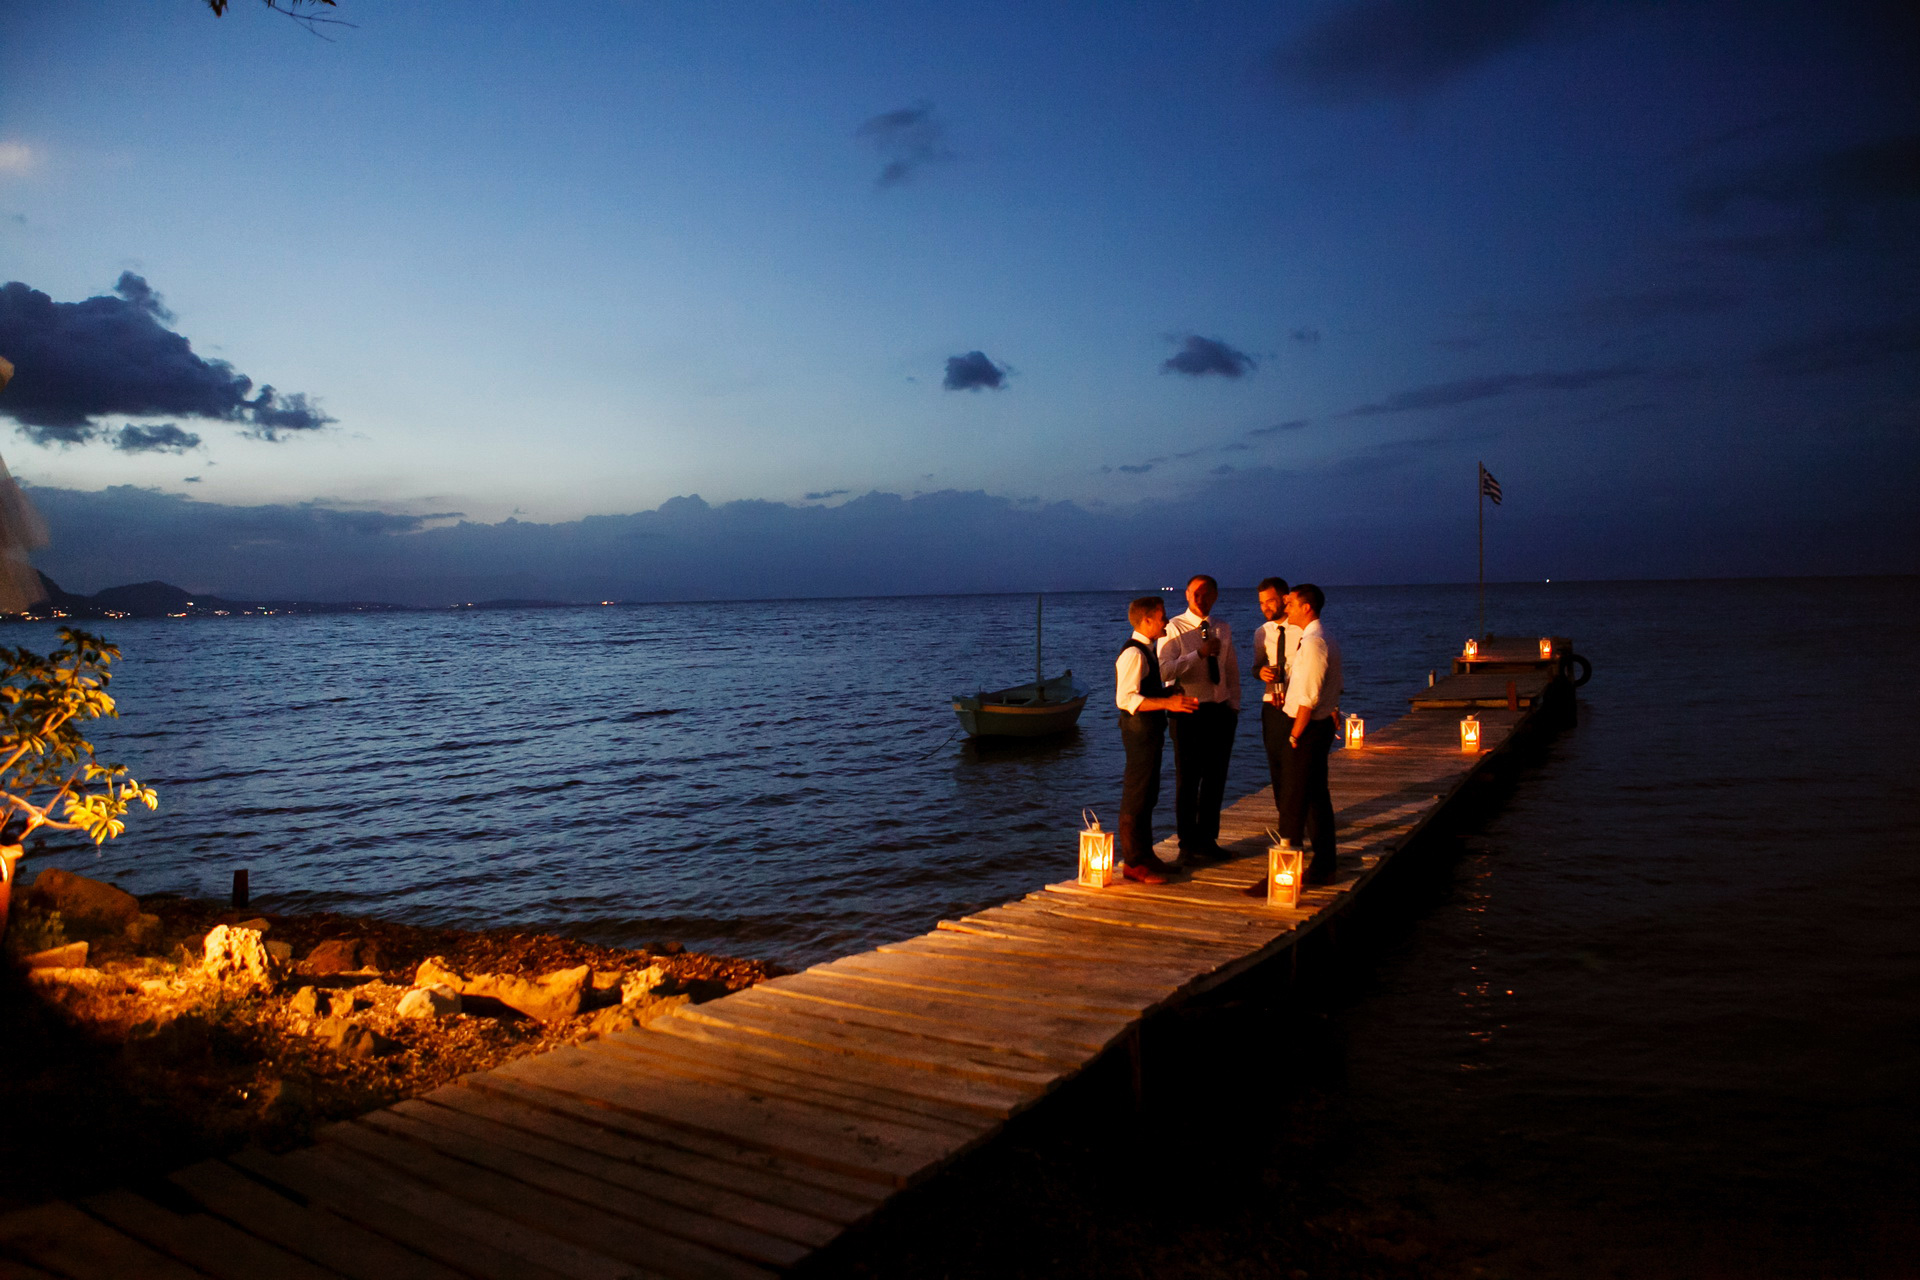 Greece Beach Wedding Elopement - Dusk Photography | moonlight provide the perfect setting for conversation among friends at the water